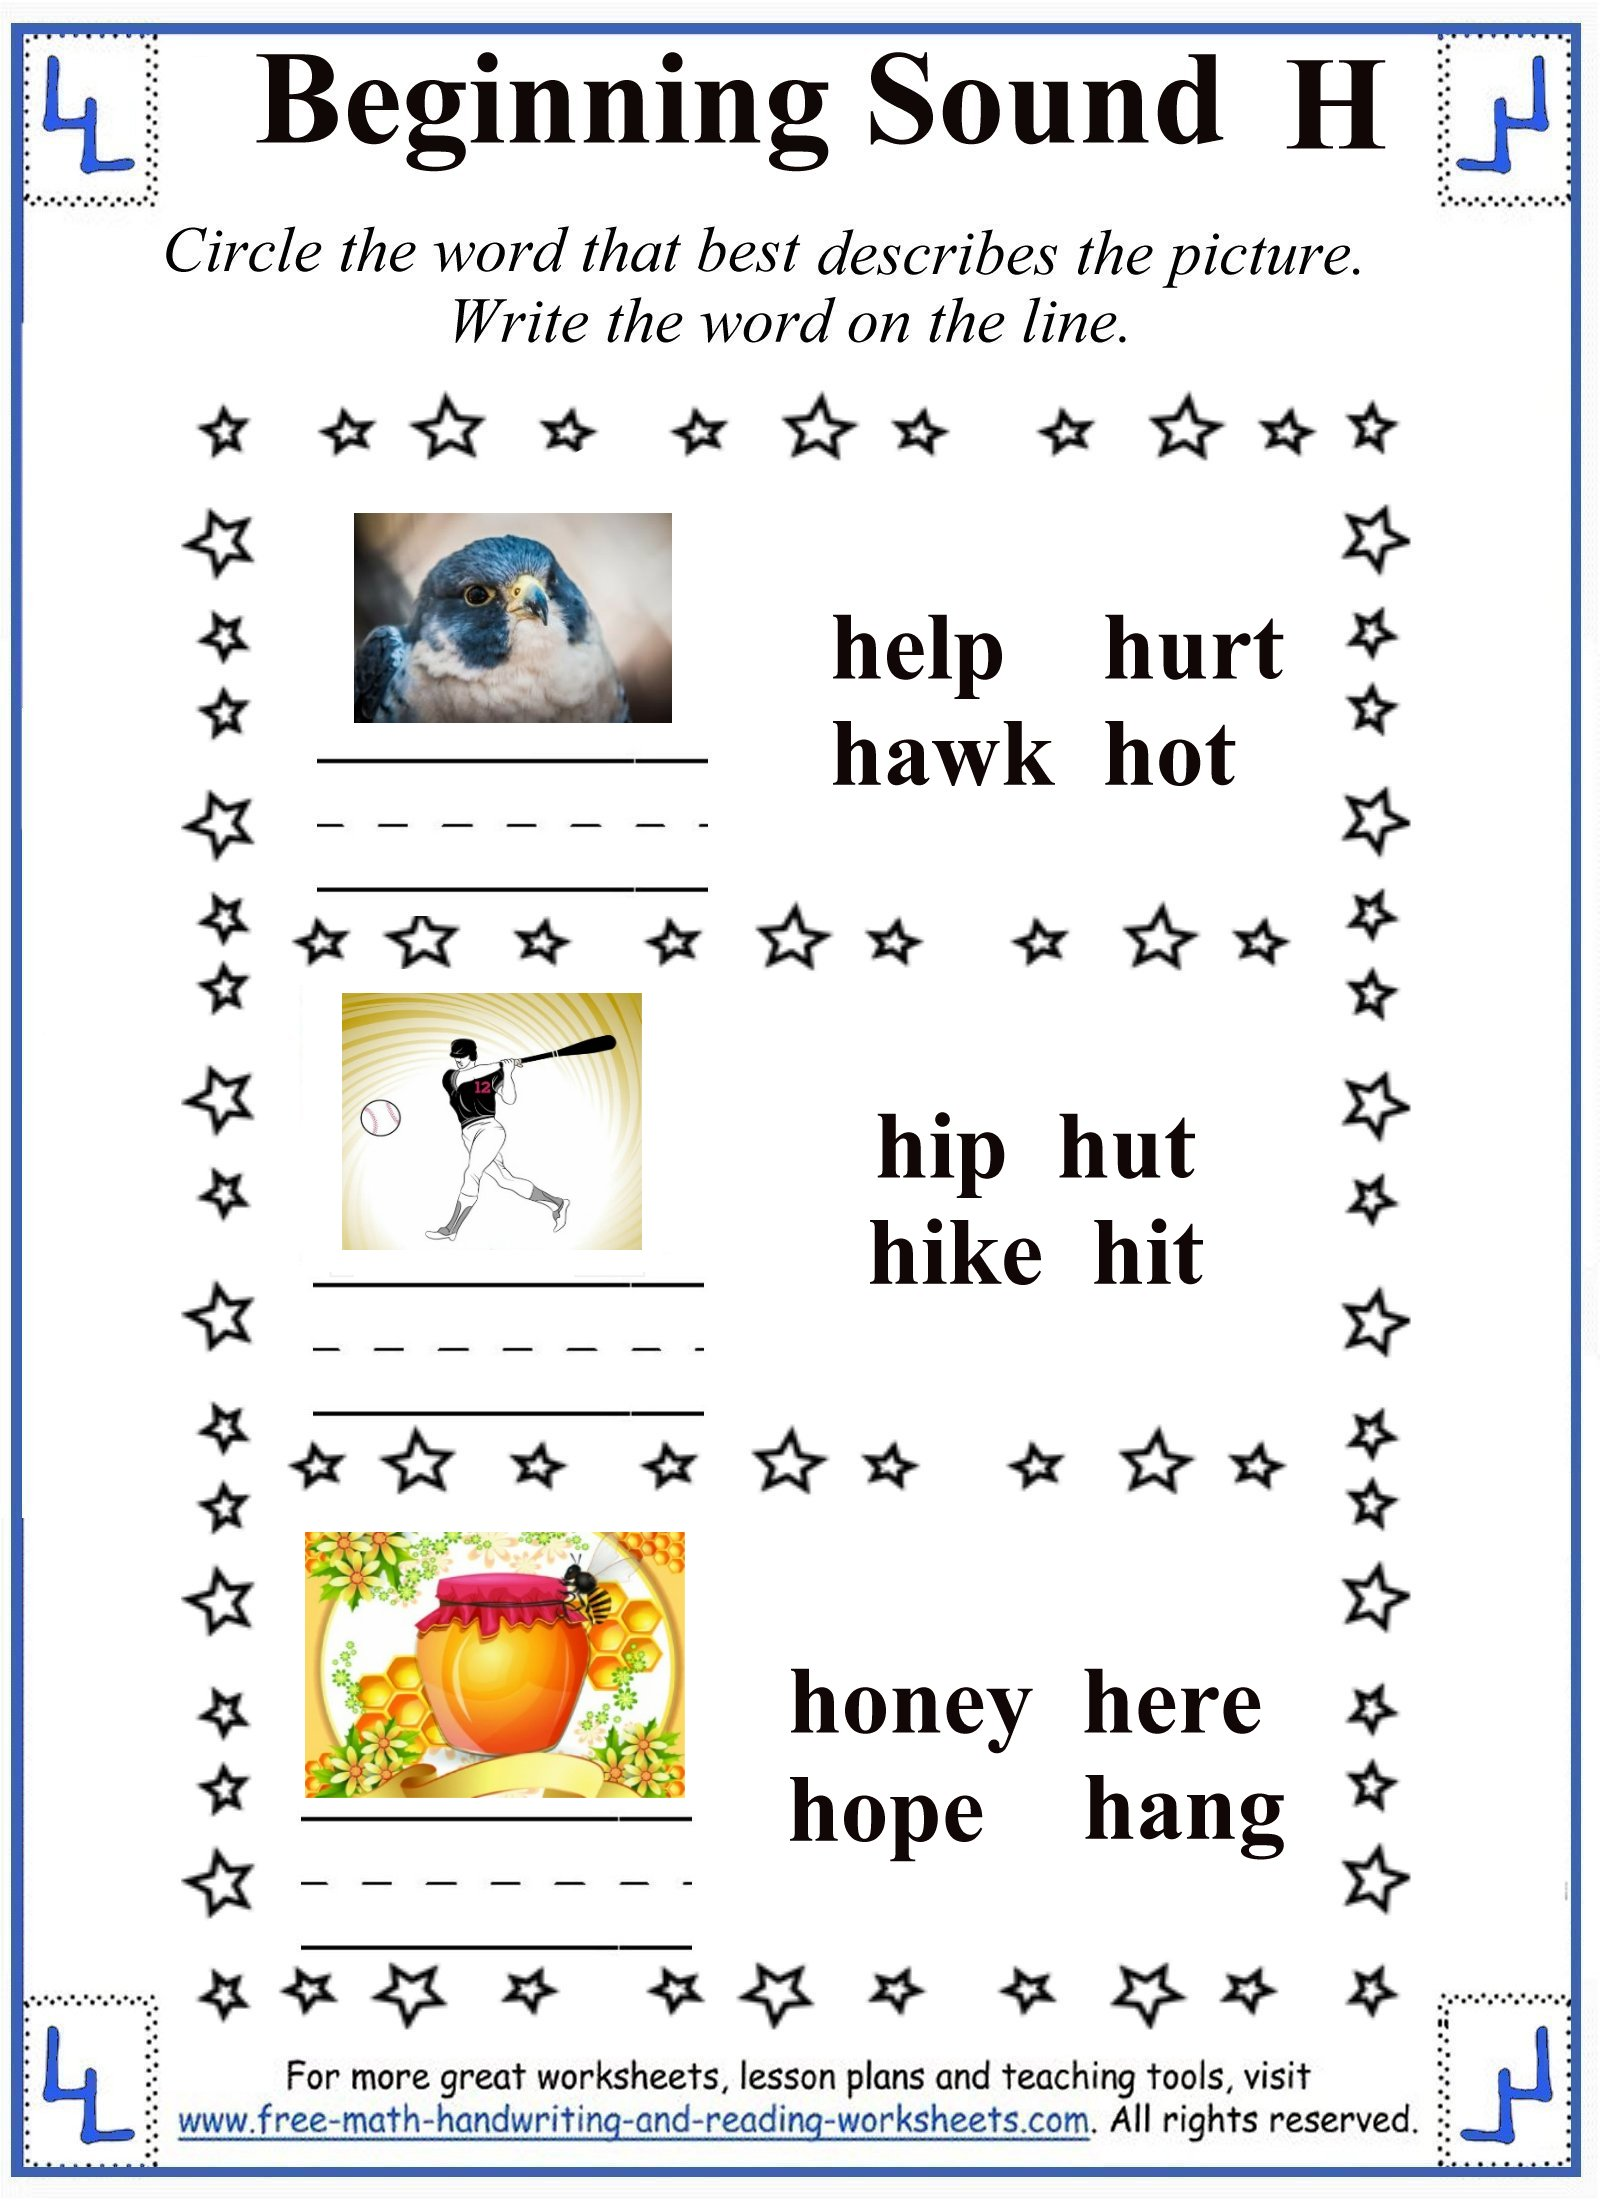 H Letter Worksheets – Letter H Worksheets Kindergarten